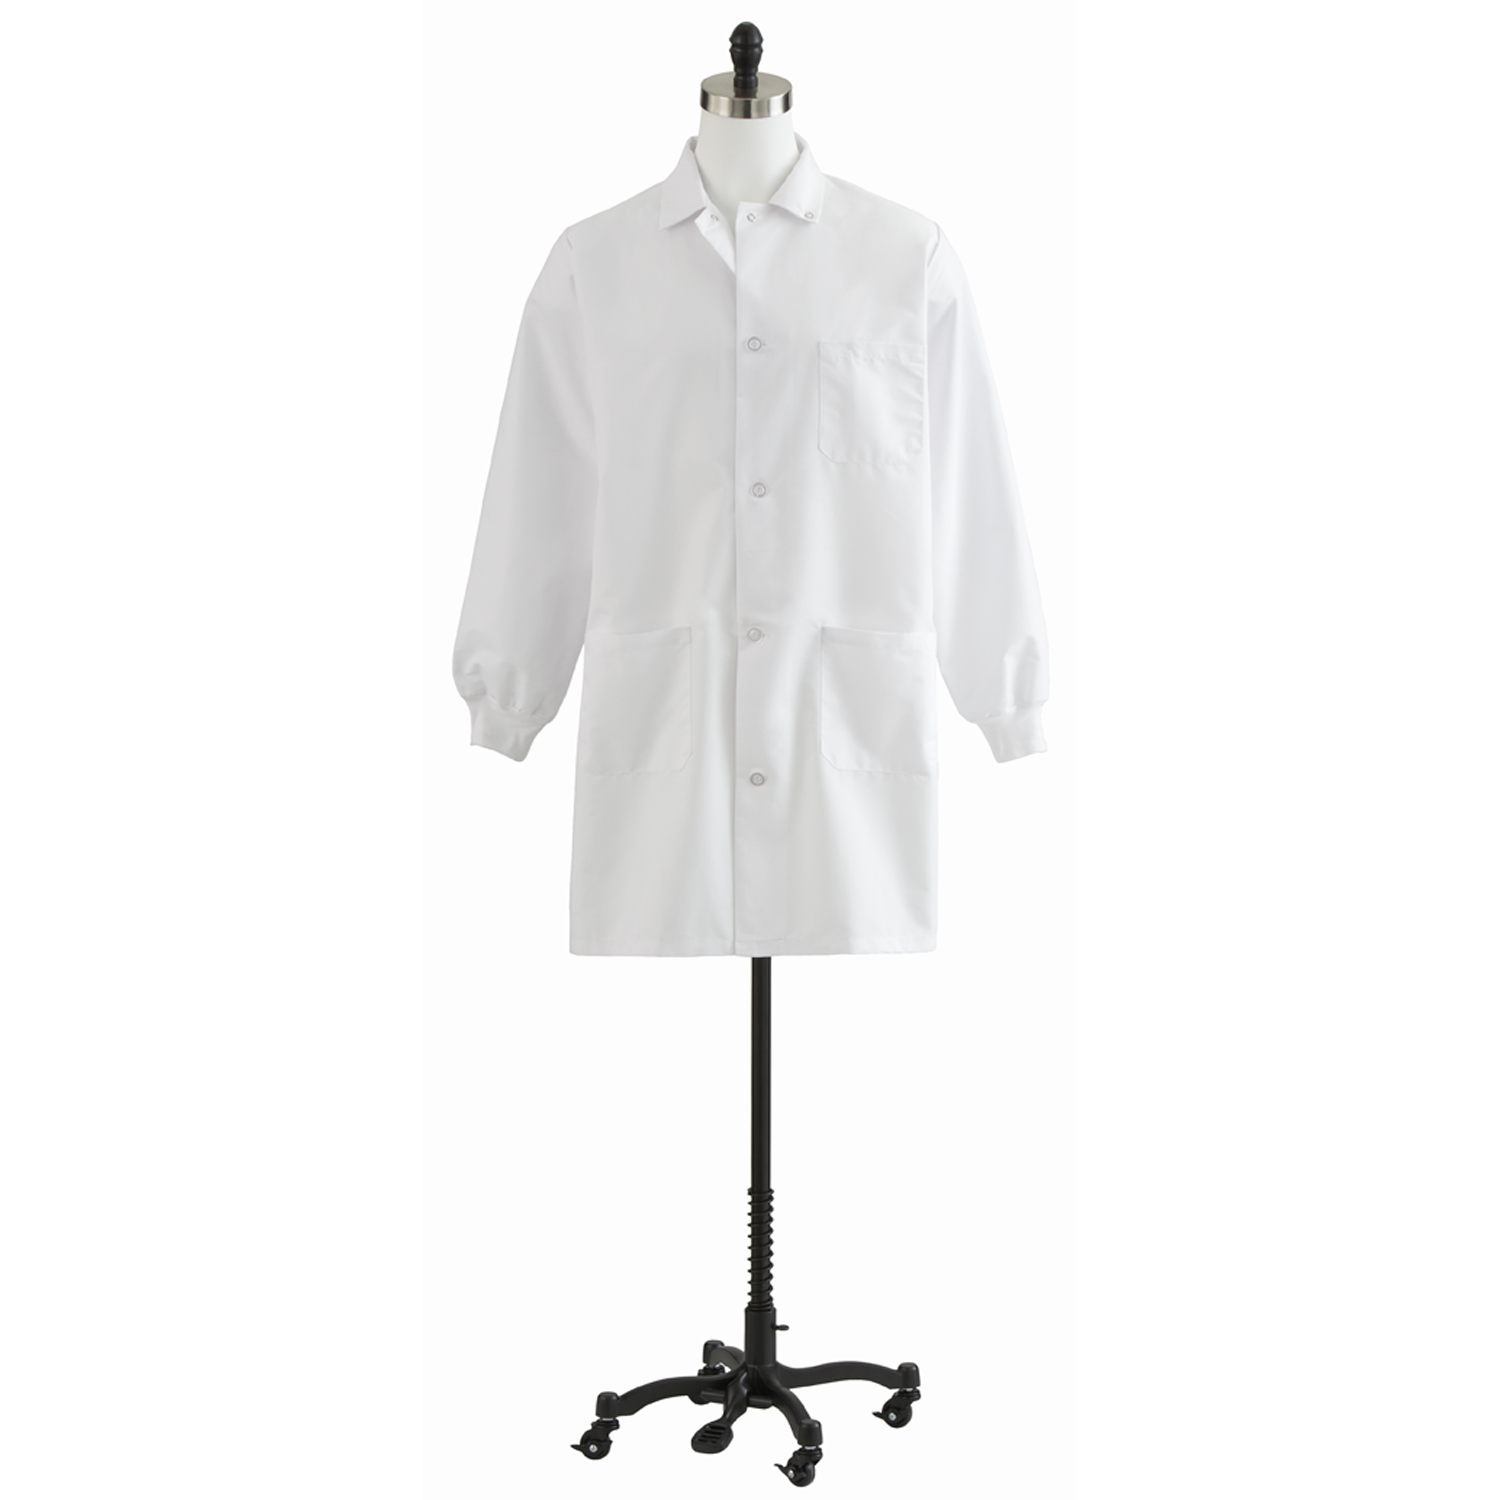 87050 Unisex Knee Length Lab Coat-Medline